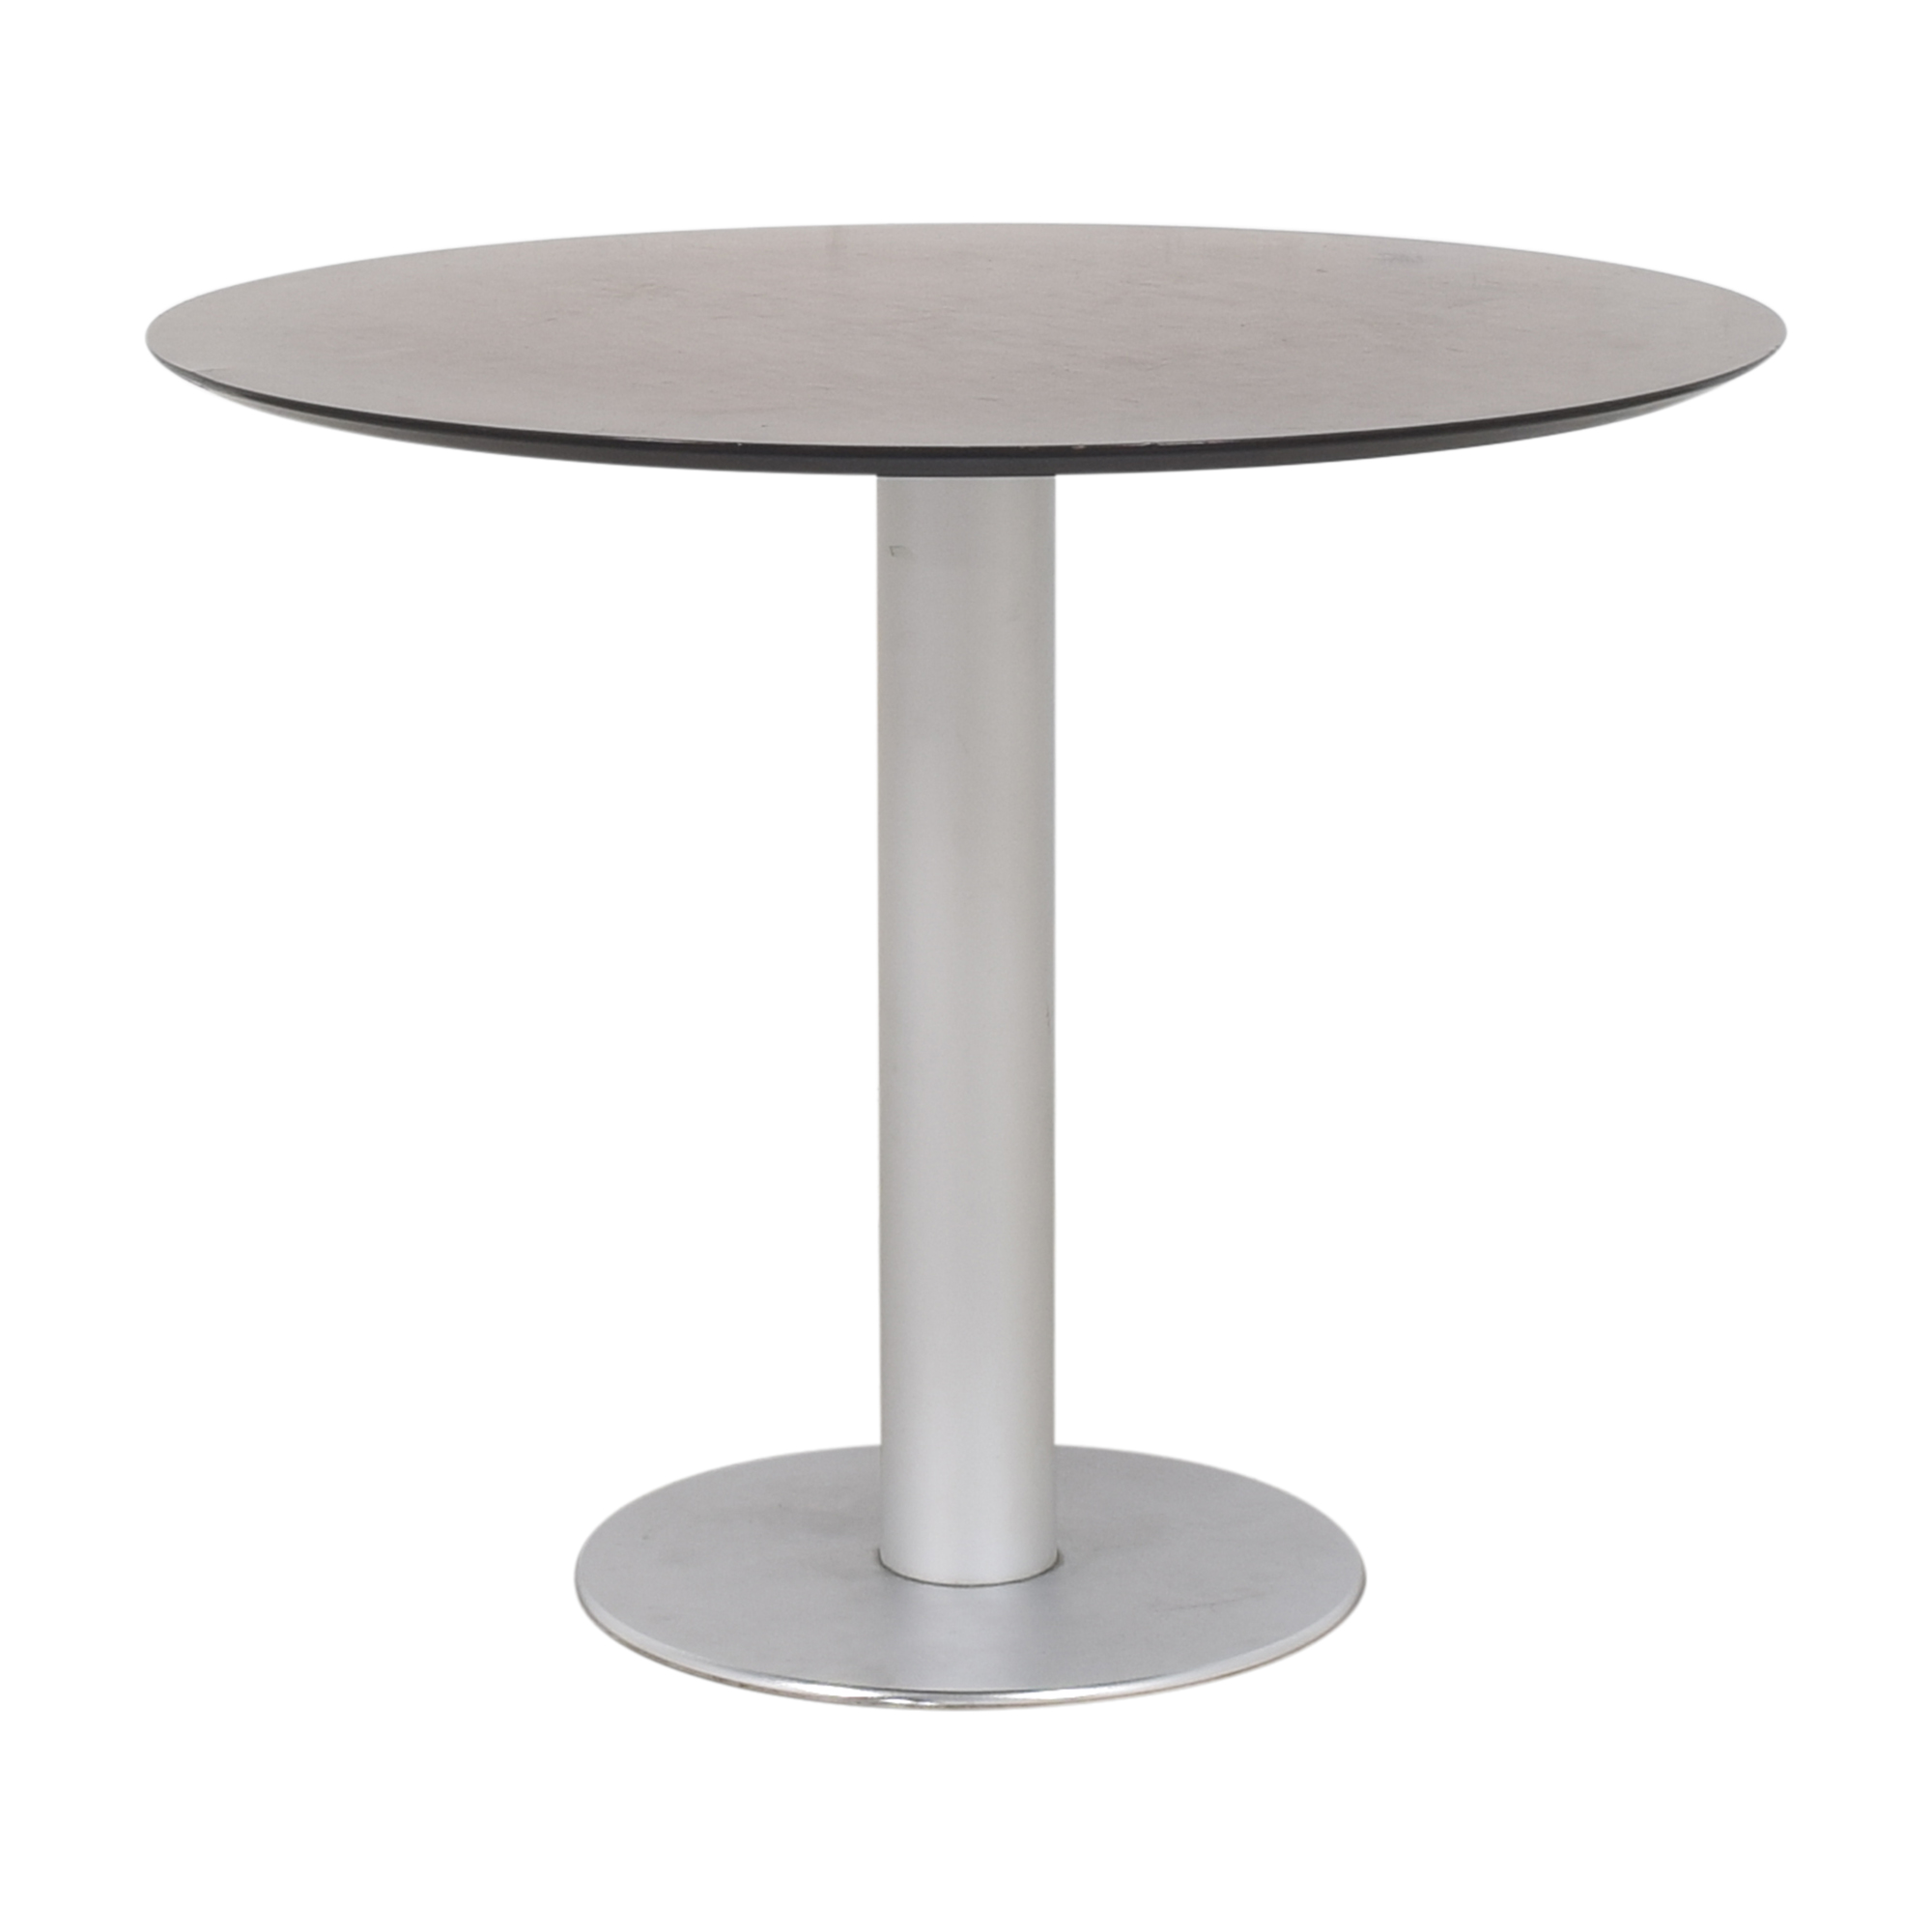 STUA Zero Dining Table / Dinner Tables